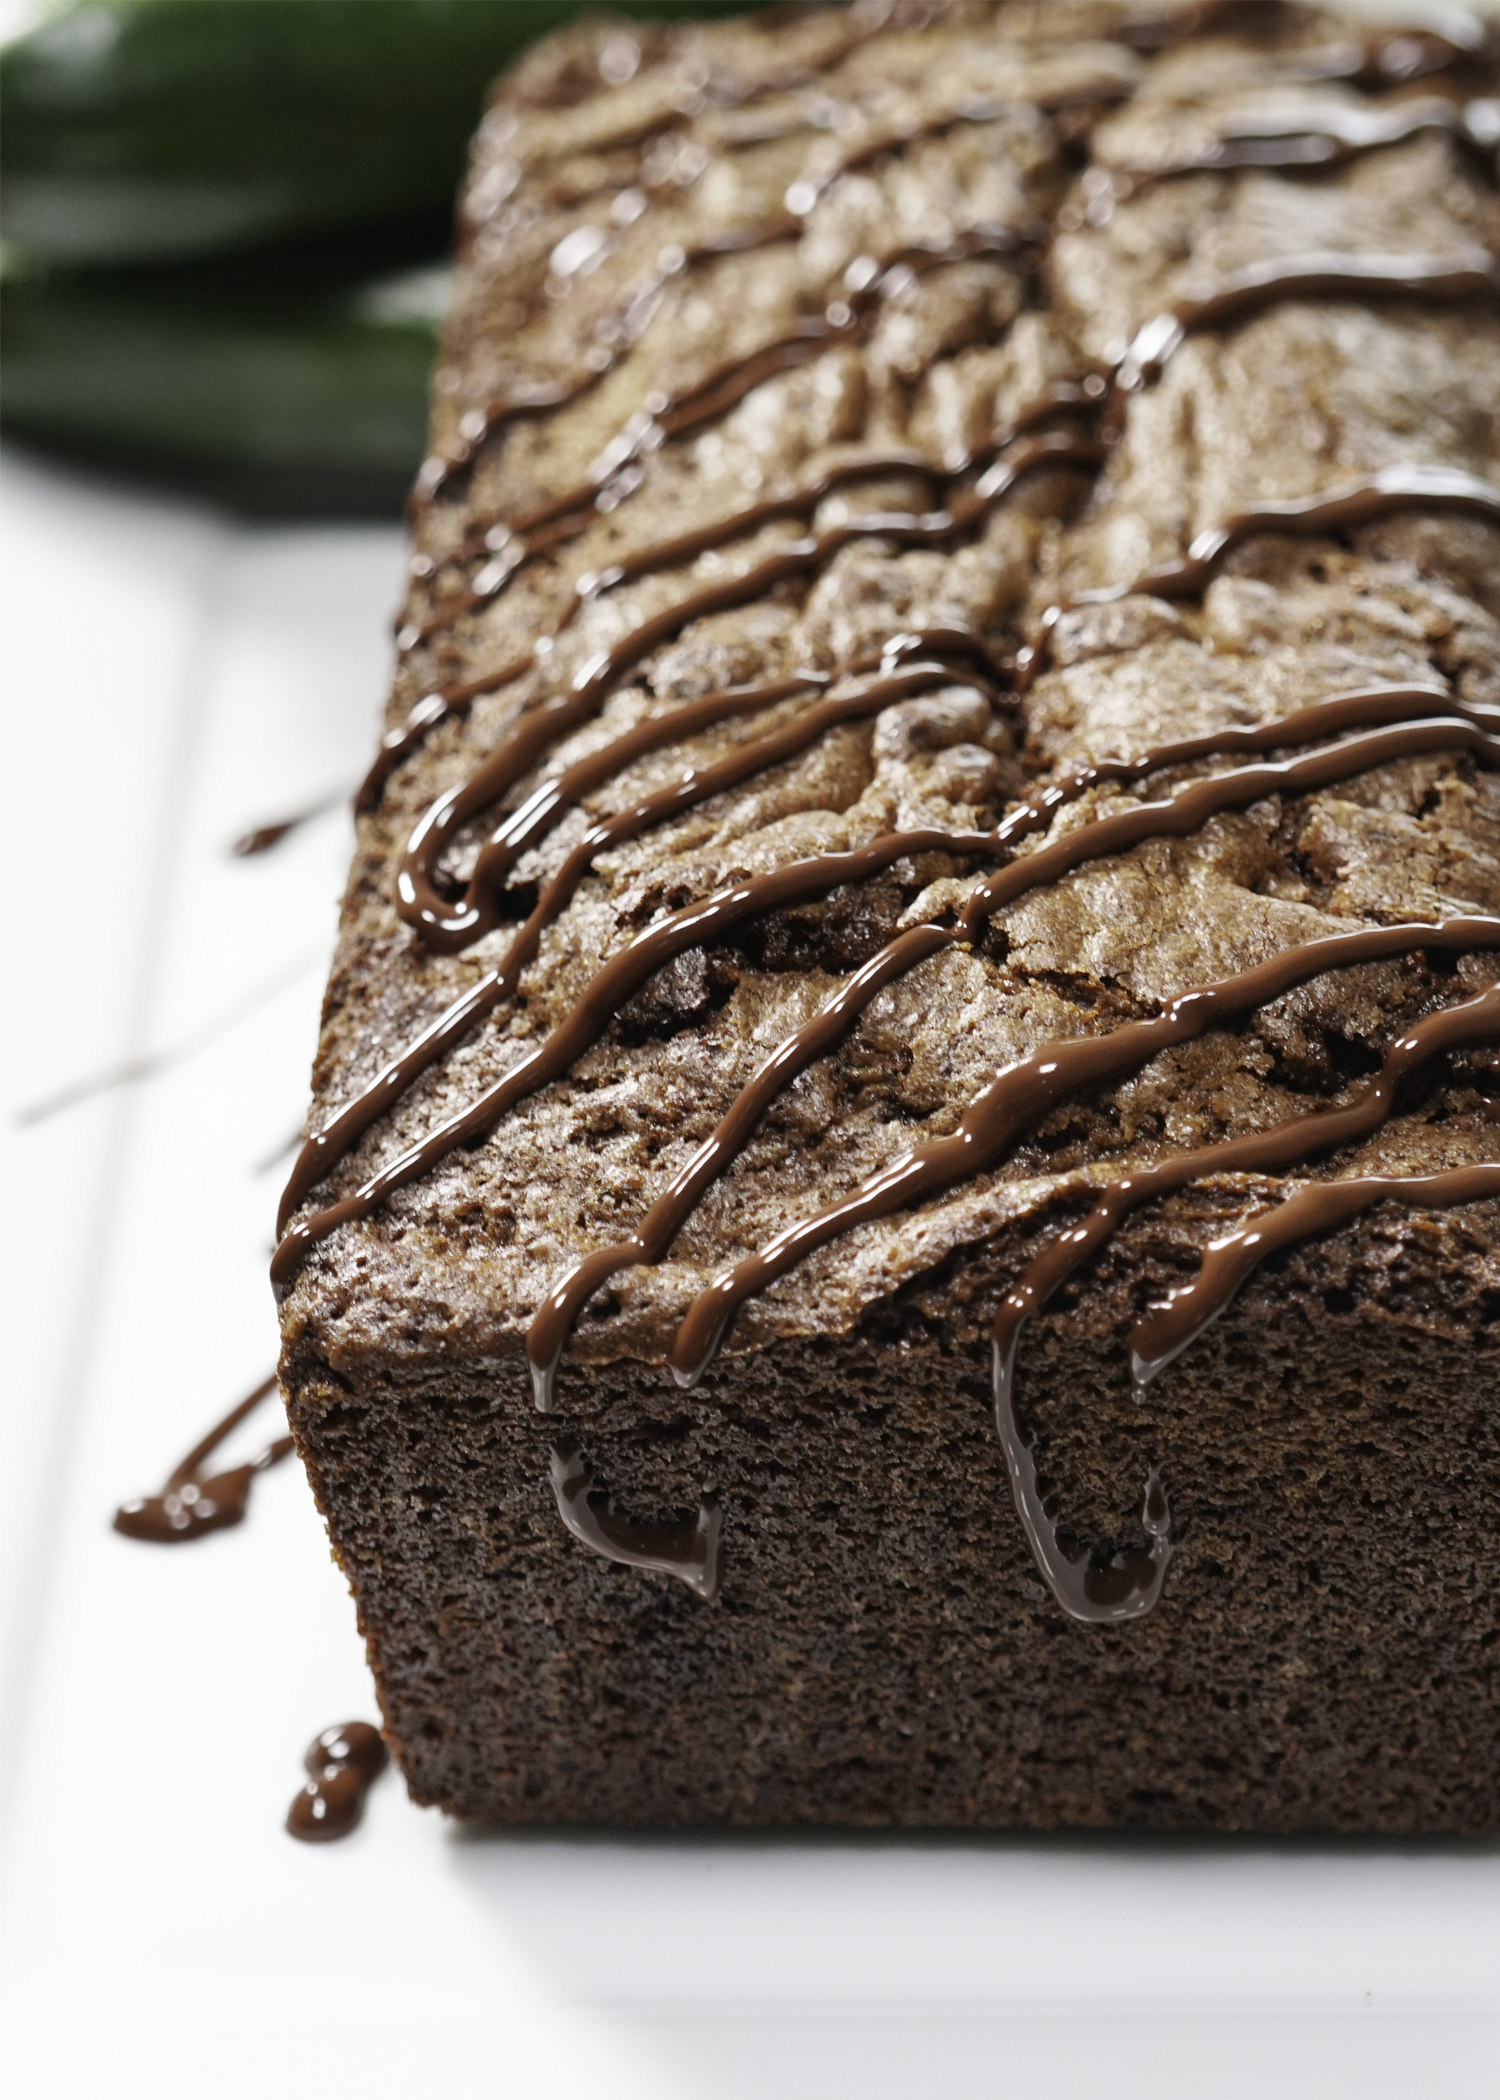 Chocolate bread recipes - Try some traditional breads with a twist of SoChatti Chocolate!